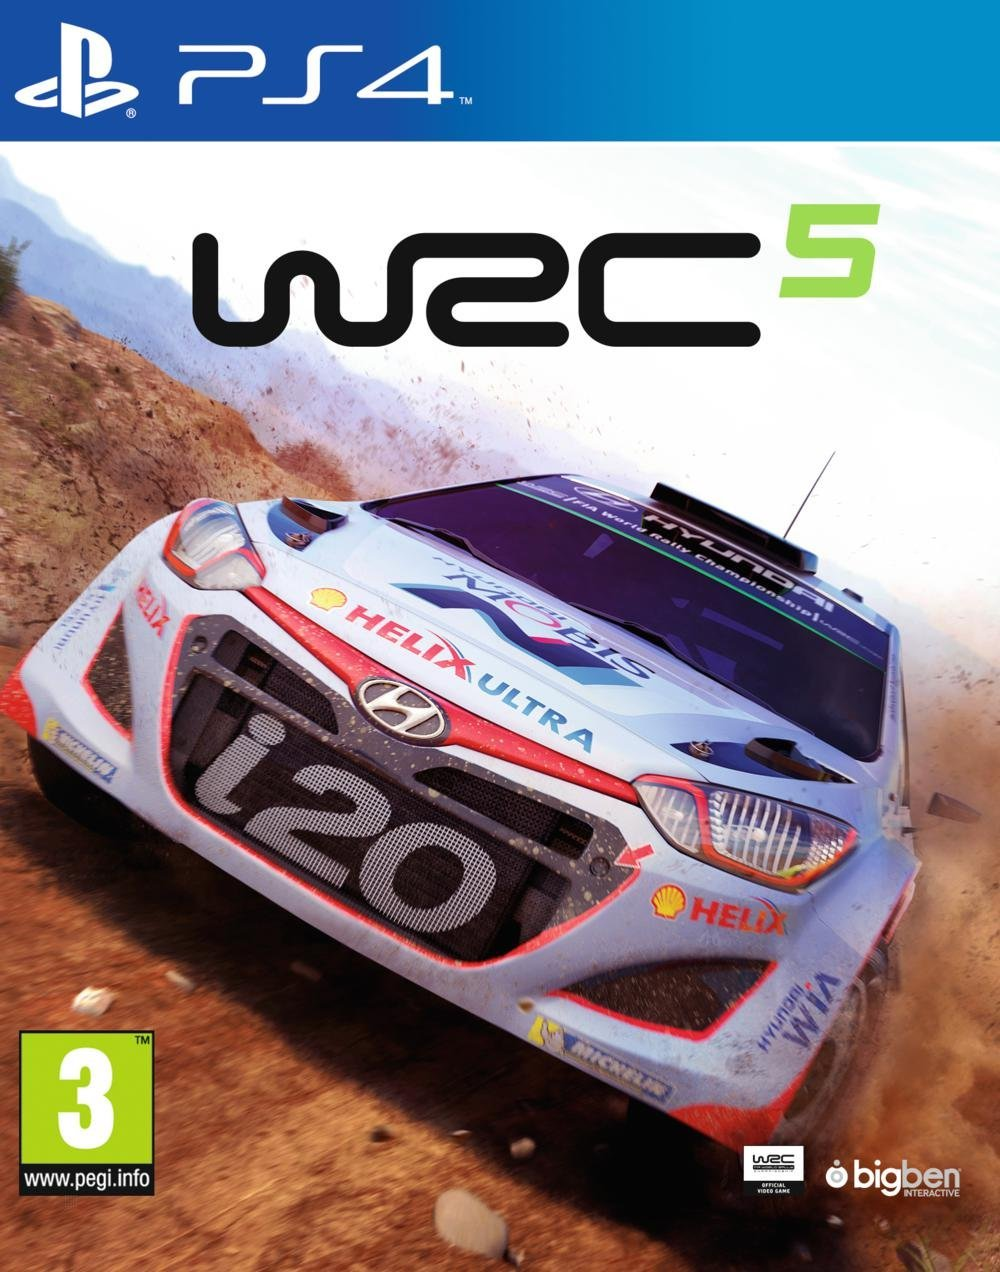 test de wrc 5 pc ps4 xbox one ps3 xbox 360 page 1 gamalive. Black Bedroom Furniture Sets. Home Design Ideas